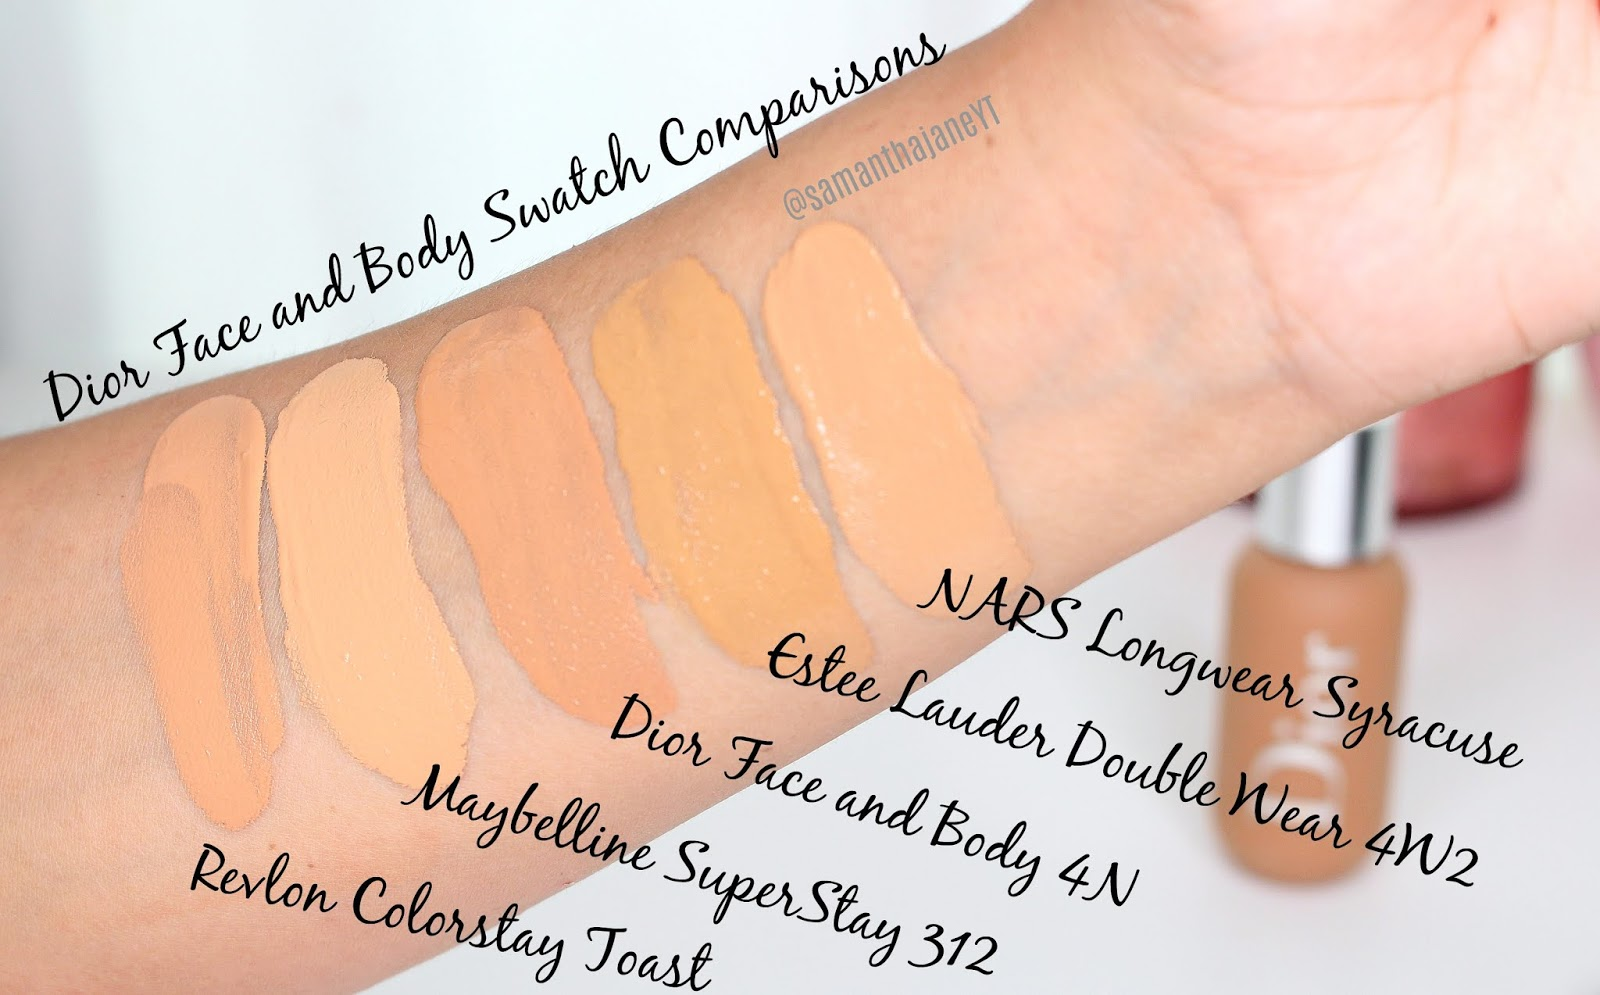 845102dd Samantha Jane: Dior Face and Body Foundation Shades/Swatch Comparisons